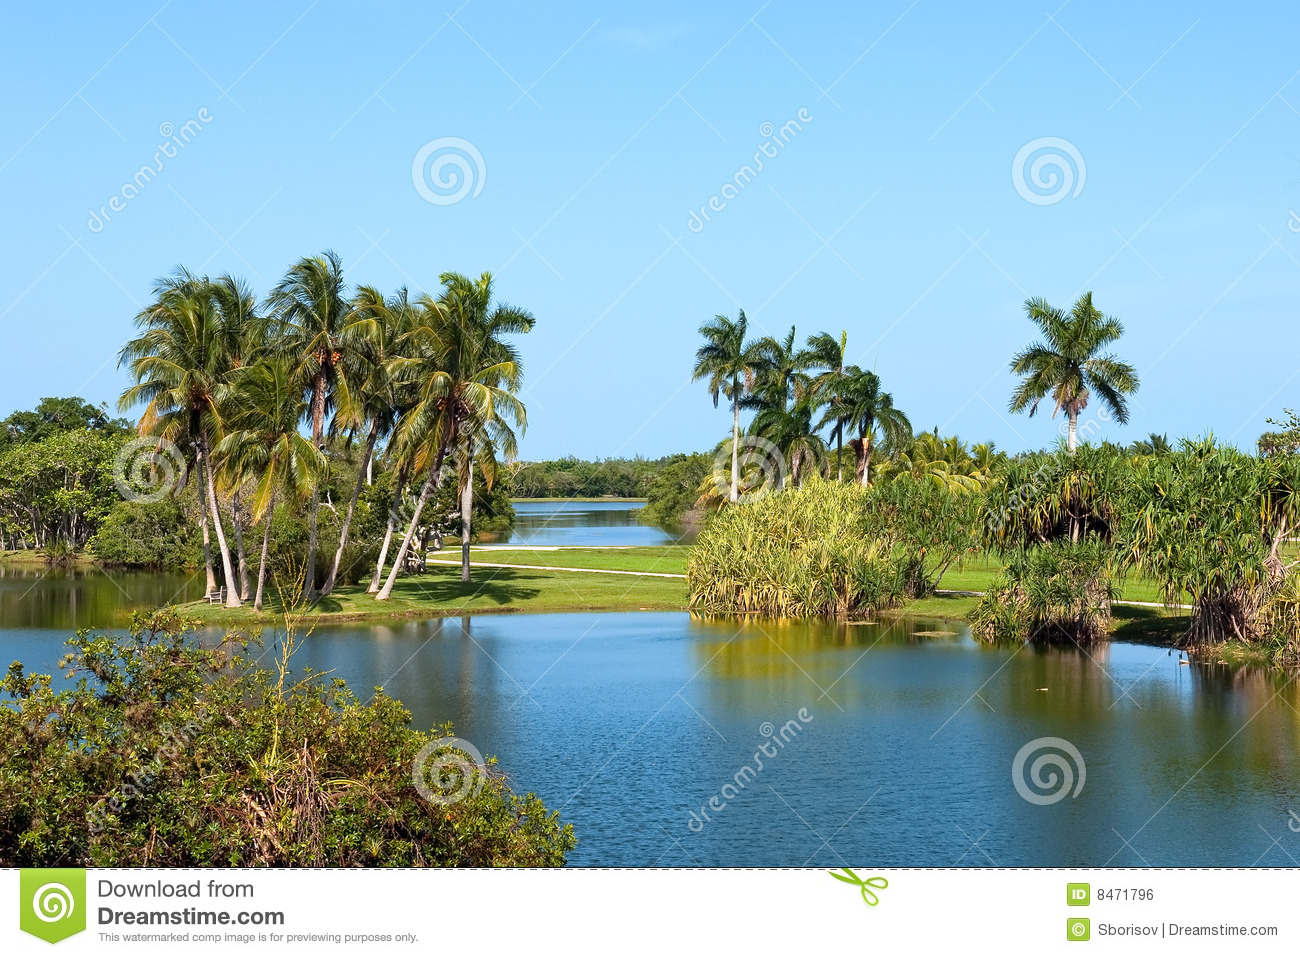 Fairchild tropical botanic garden stock photo image of - Fairchild tropical botanic garden hours ...